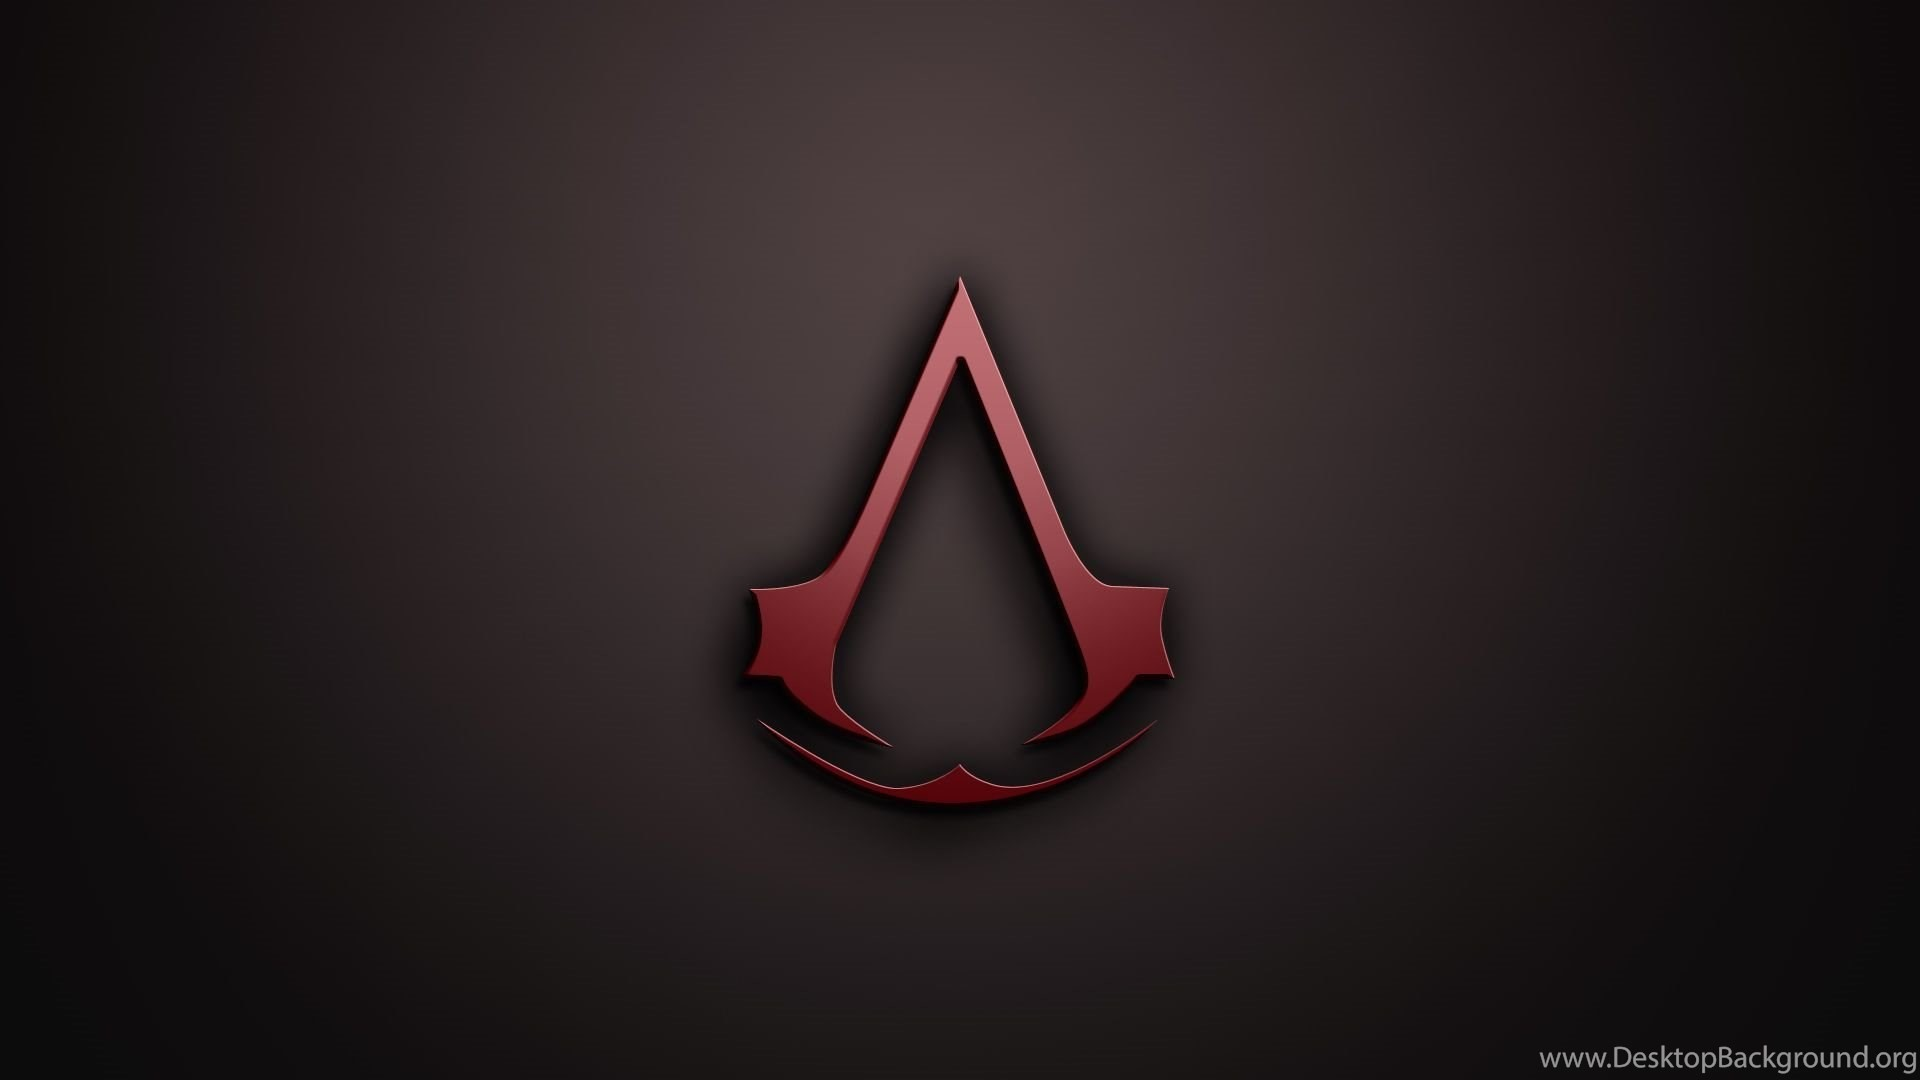 assassins creed symbol desktop wallpaper (87+ images)